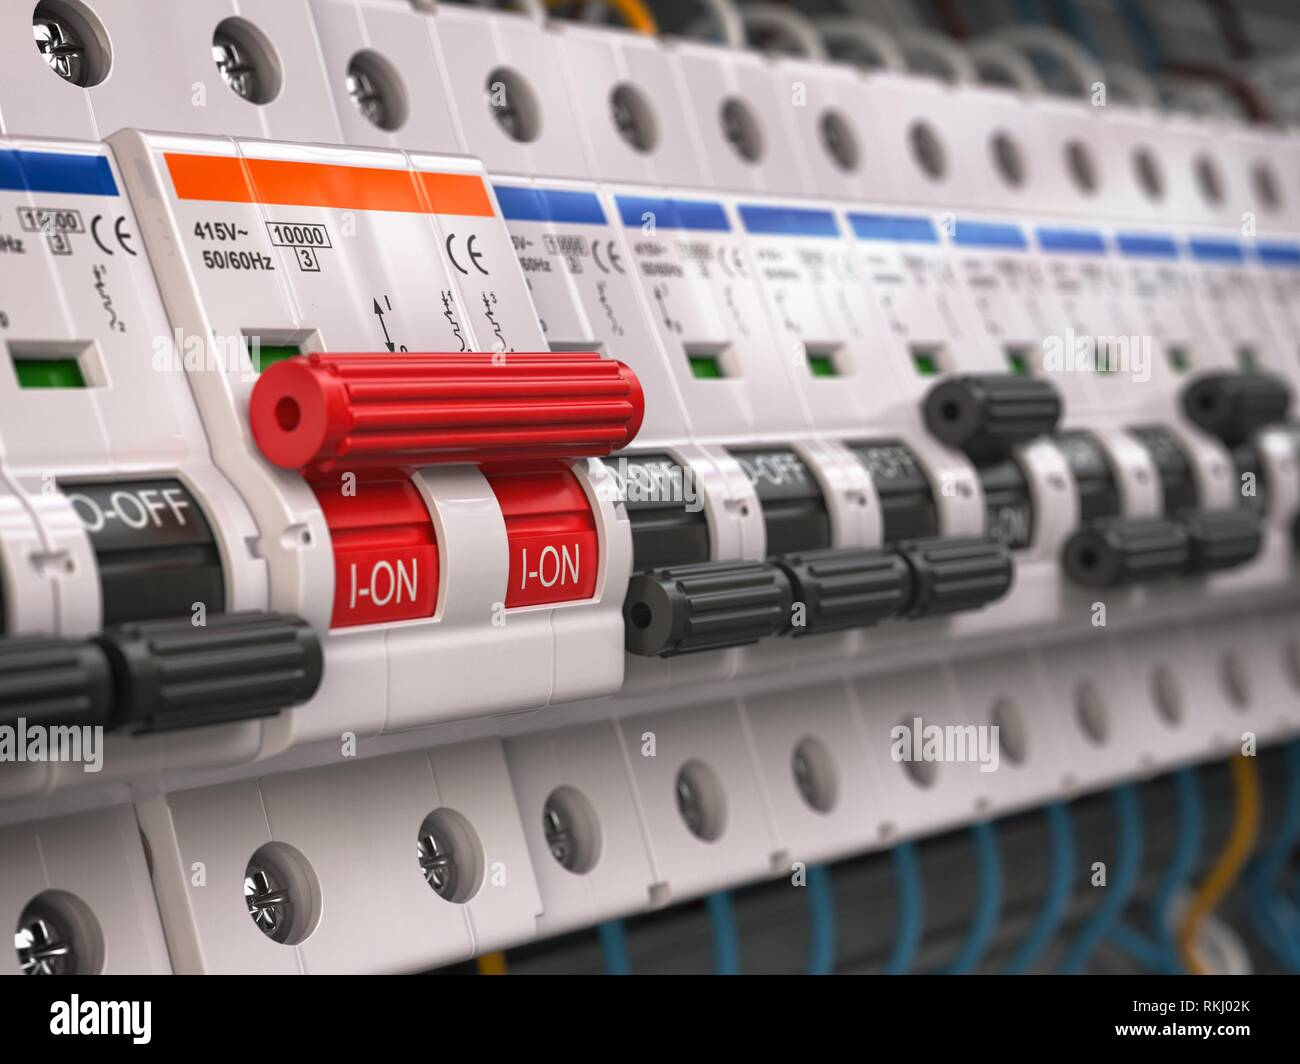 switches in fusebox  many black circuit brakers in a row in position off  and one red switch in position on  3d illustration